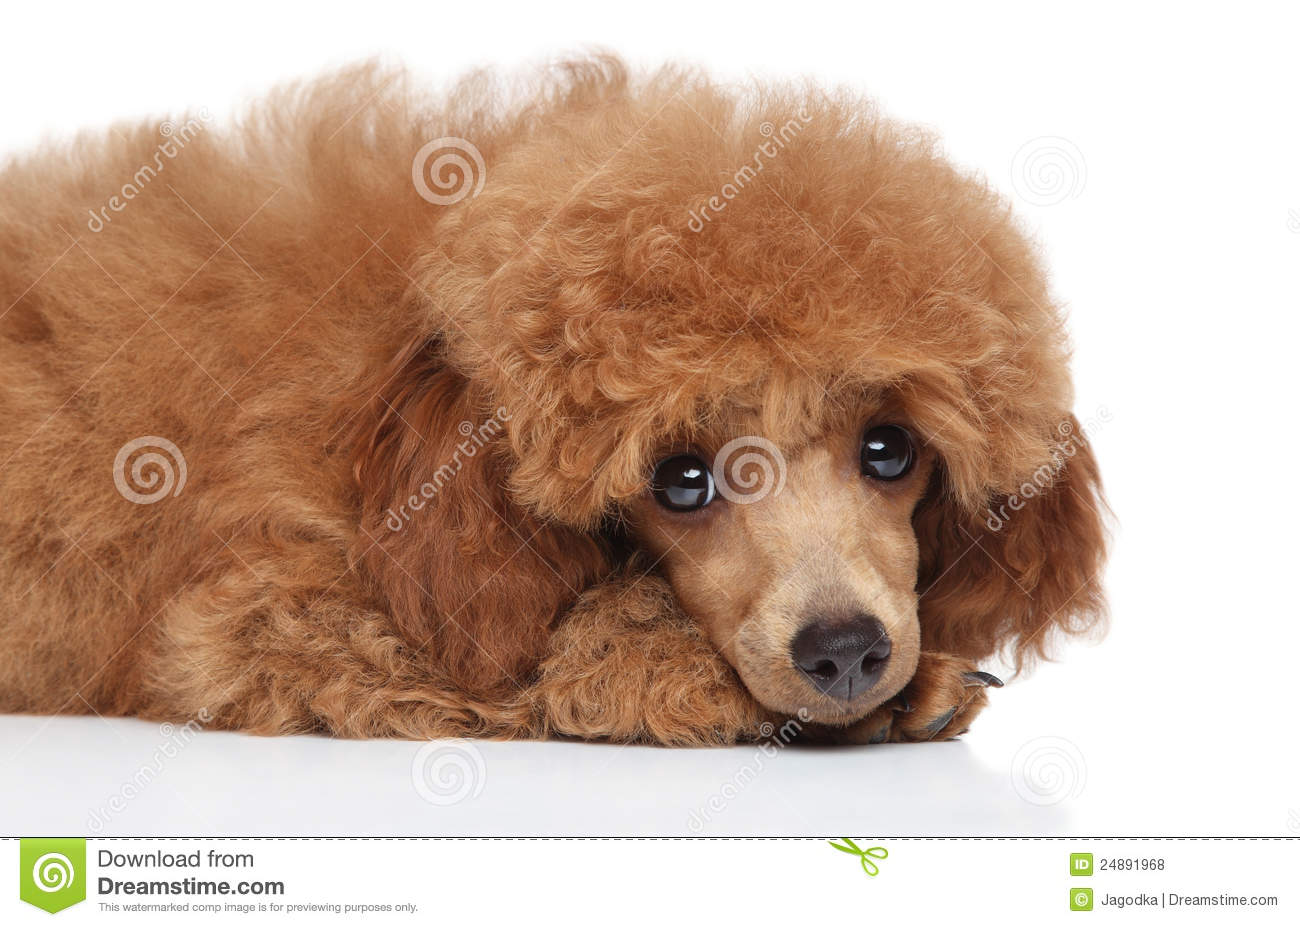 Baby White Toy Poodle Sad toy poodle puppy.